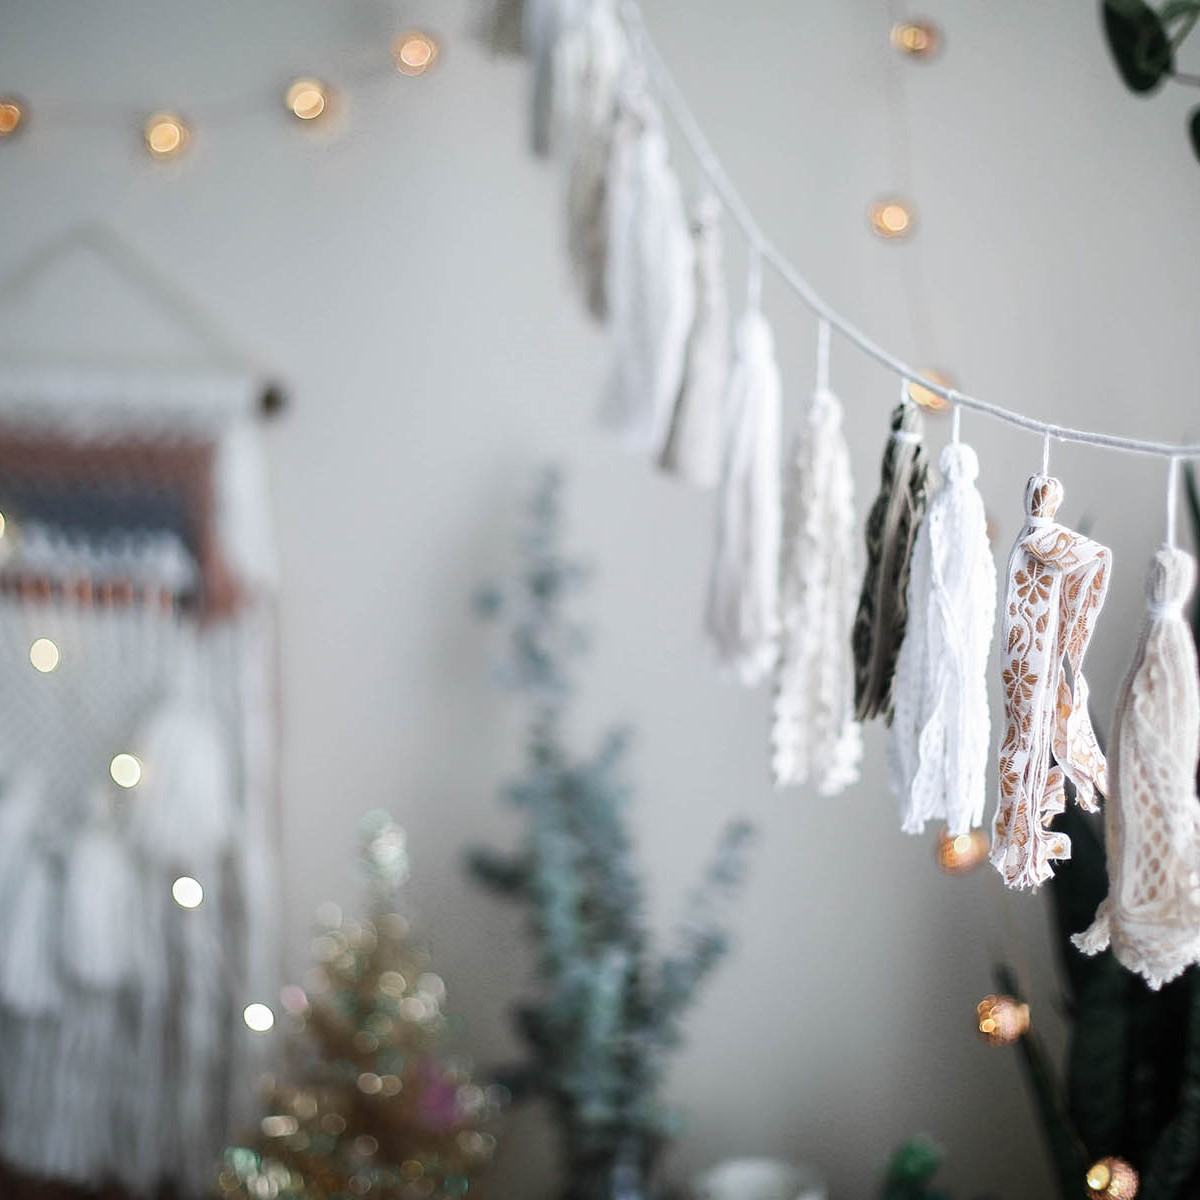 a-cozy-home-for-the-chilly-winter-season-liebe-was-ist-interoir-diy-lifestyle-inspiration-weihnachtlich-winterliche-deko-ideen-7